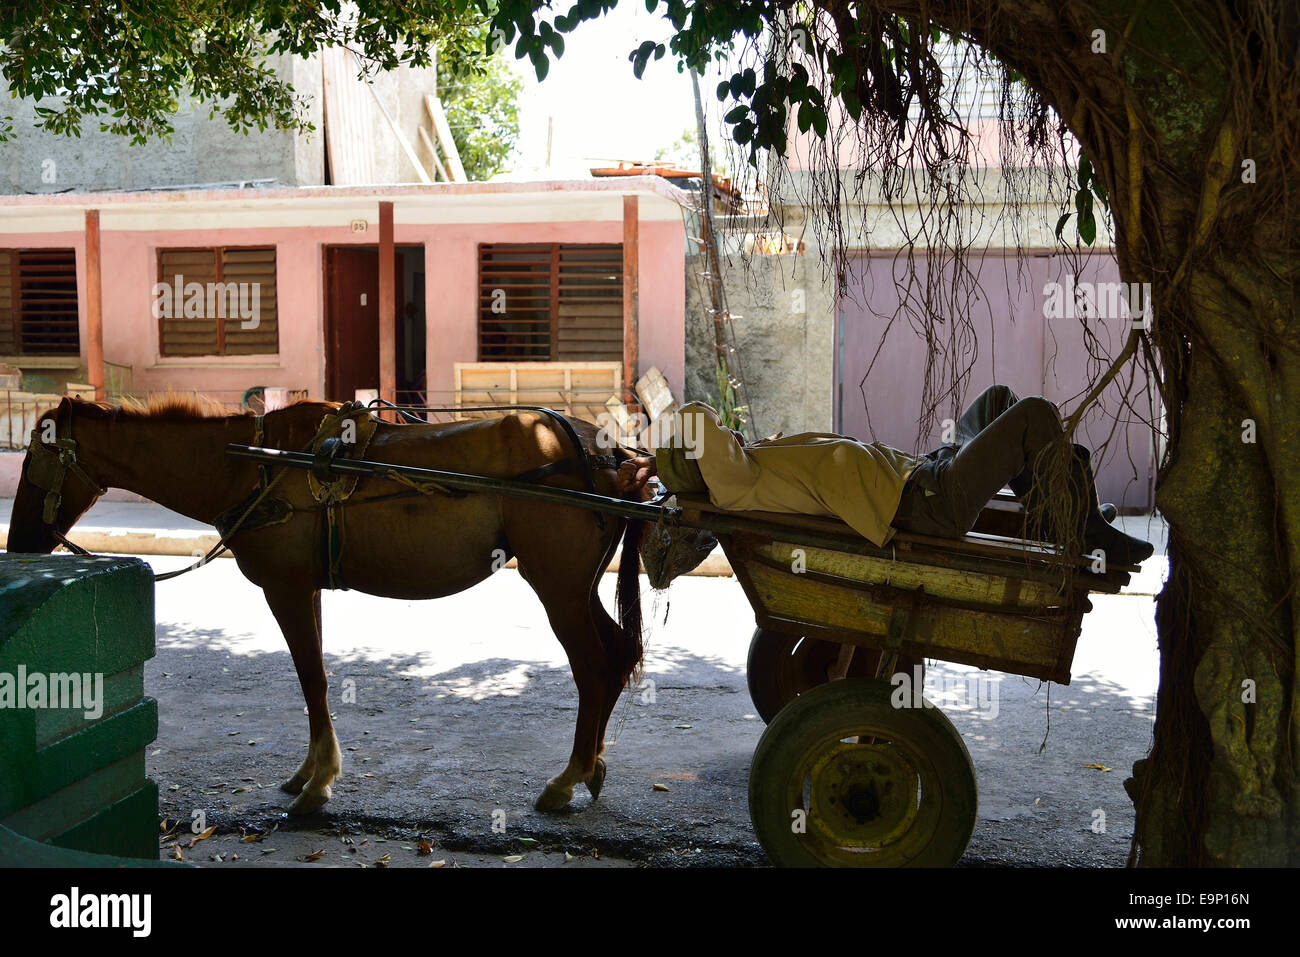 Siesta time, man having a nap on his horse and trap - Stock Image